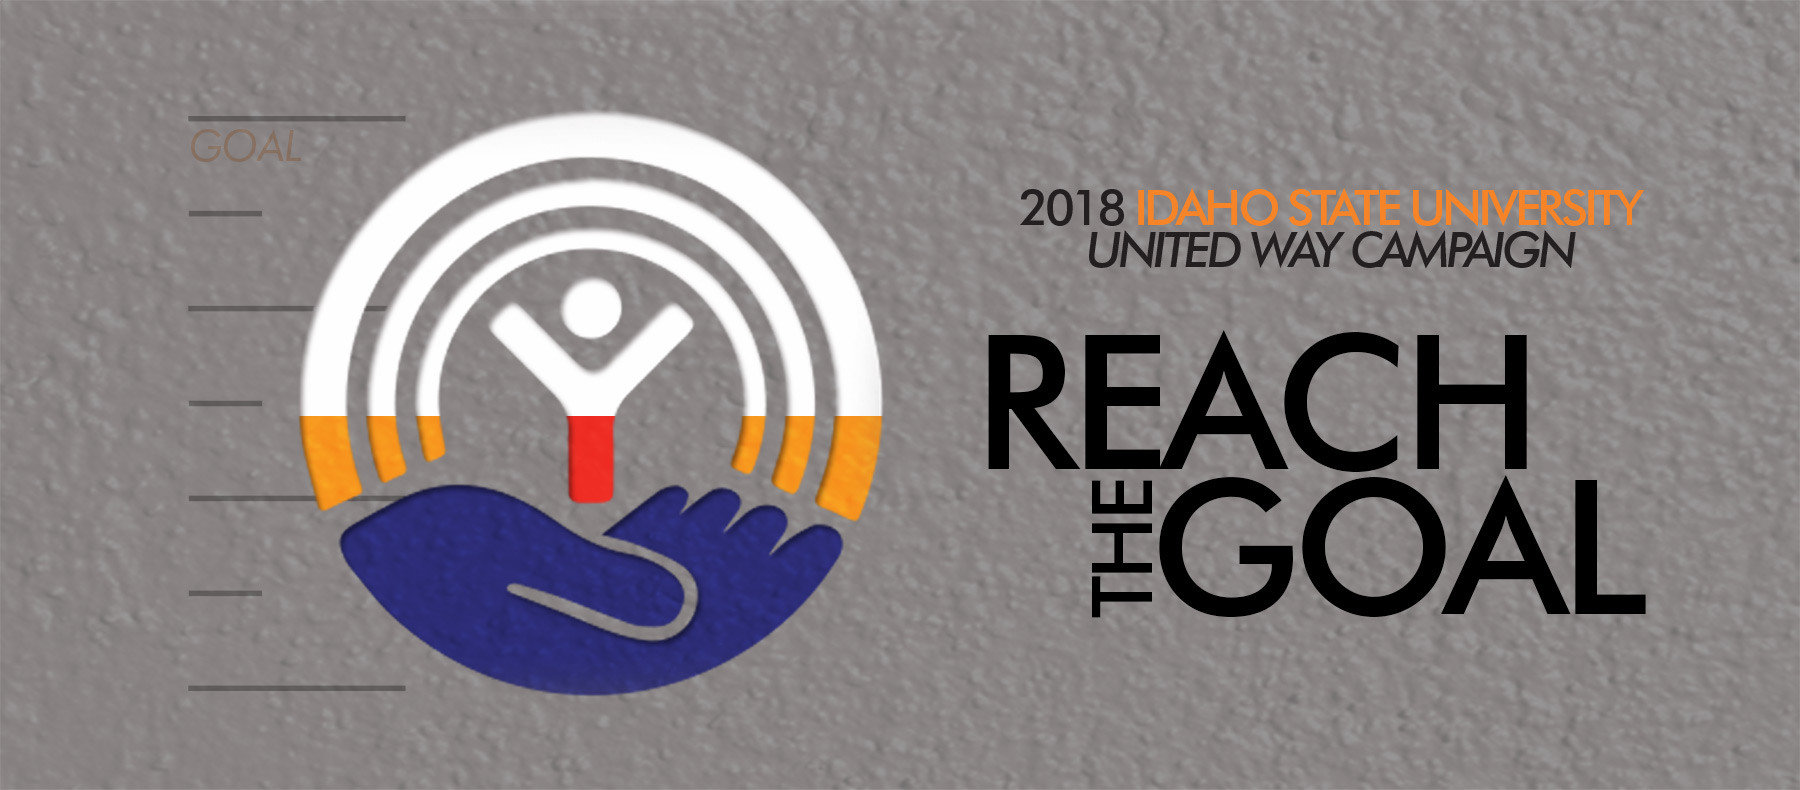 2018 Idaho State University United Way Campaign Reach the Goal